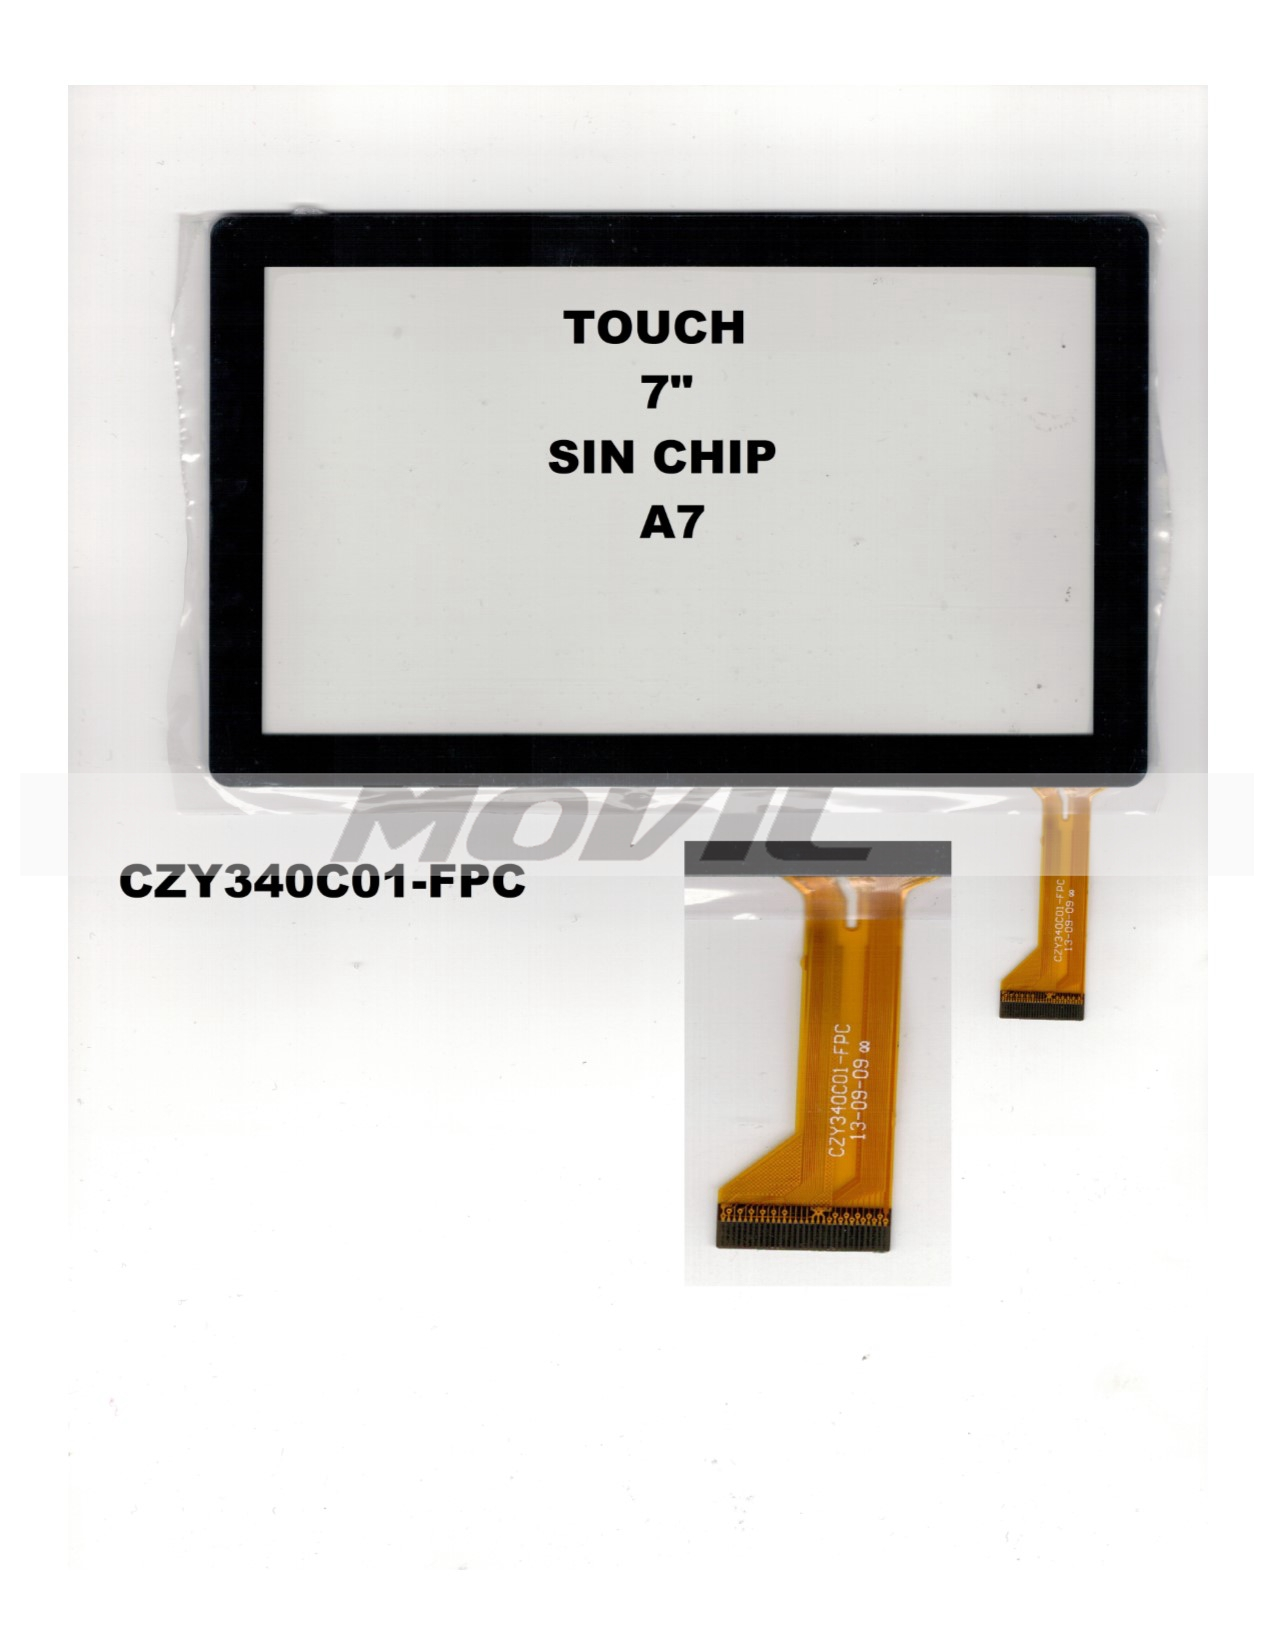 Touch tactil para tablet flex 7 inch SIN CHIP A7 CZY340C01-FPC